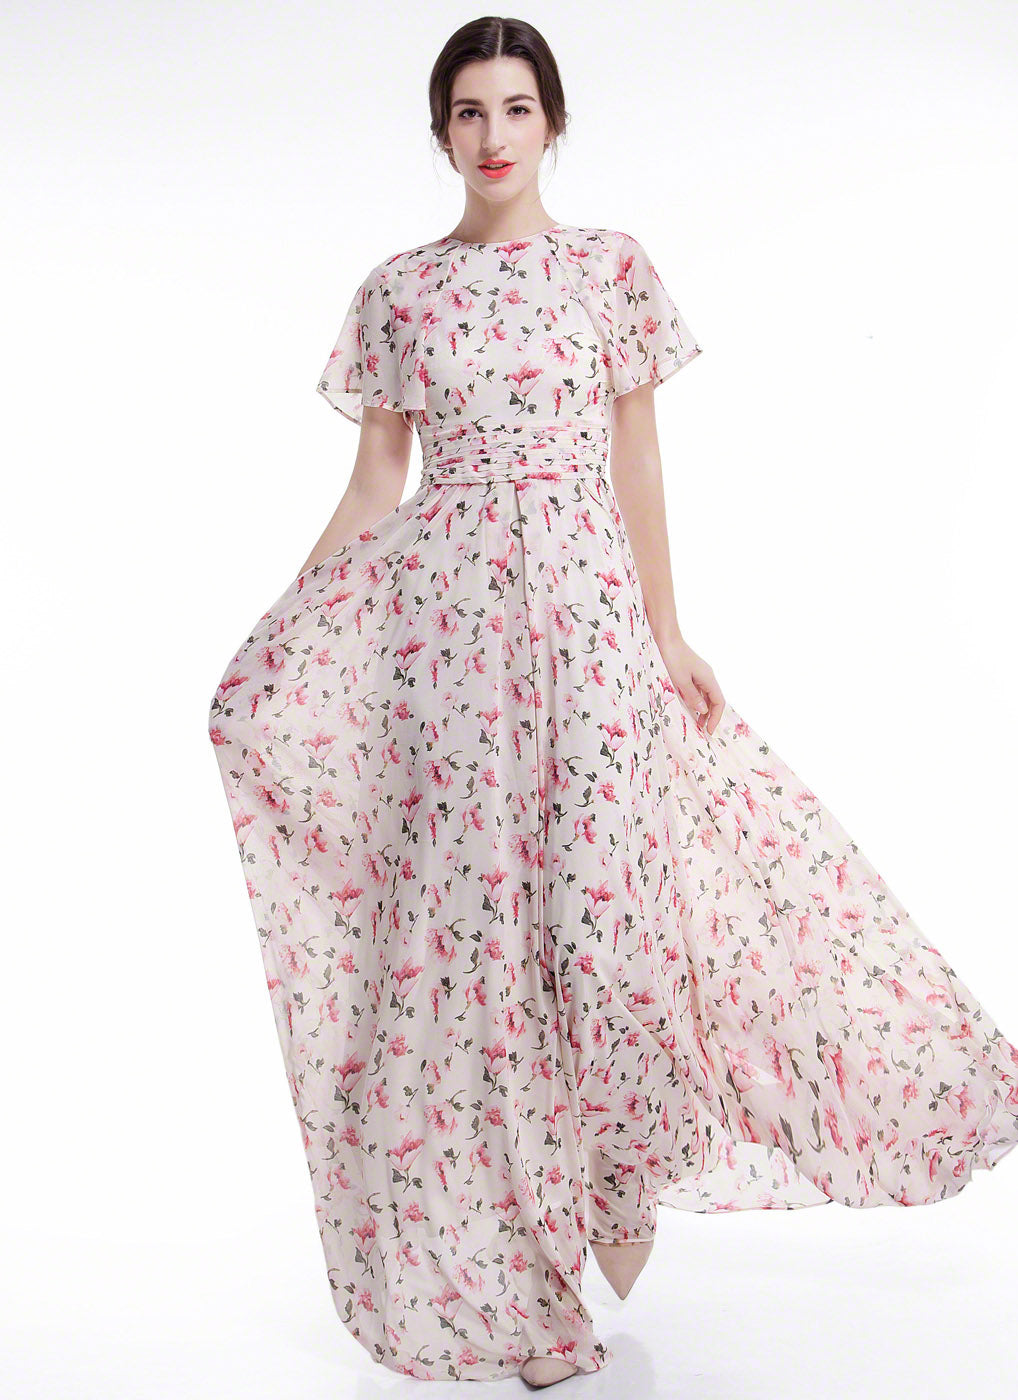 75c6ead8f2 Dusty Rose Pink Chiffon Floral Conservative Maxi Evening Dress with Do –  Luvenza - Independent Designer Handmade Dress